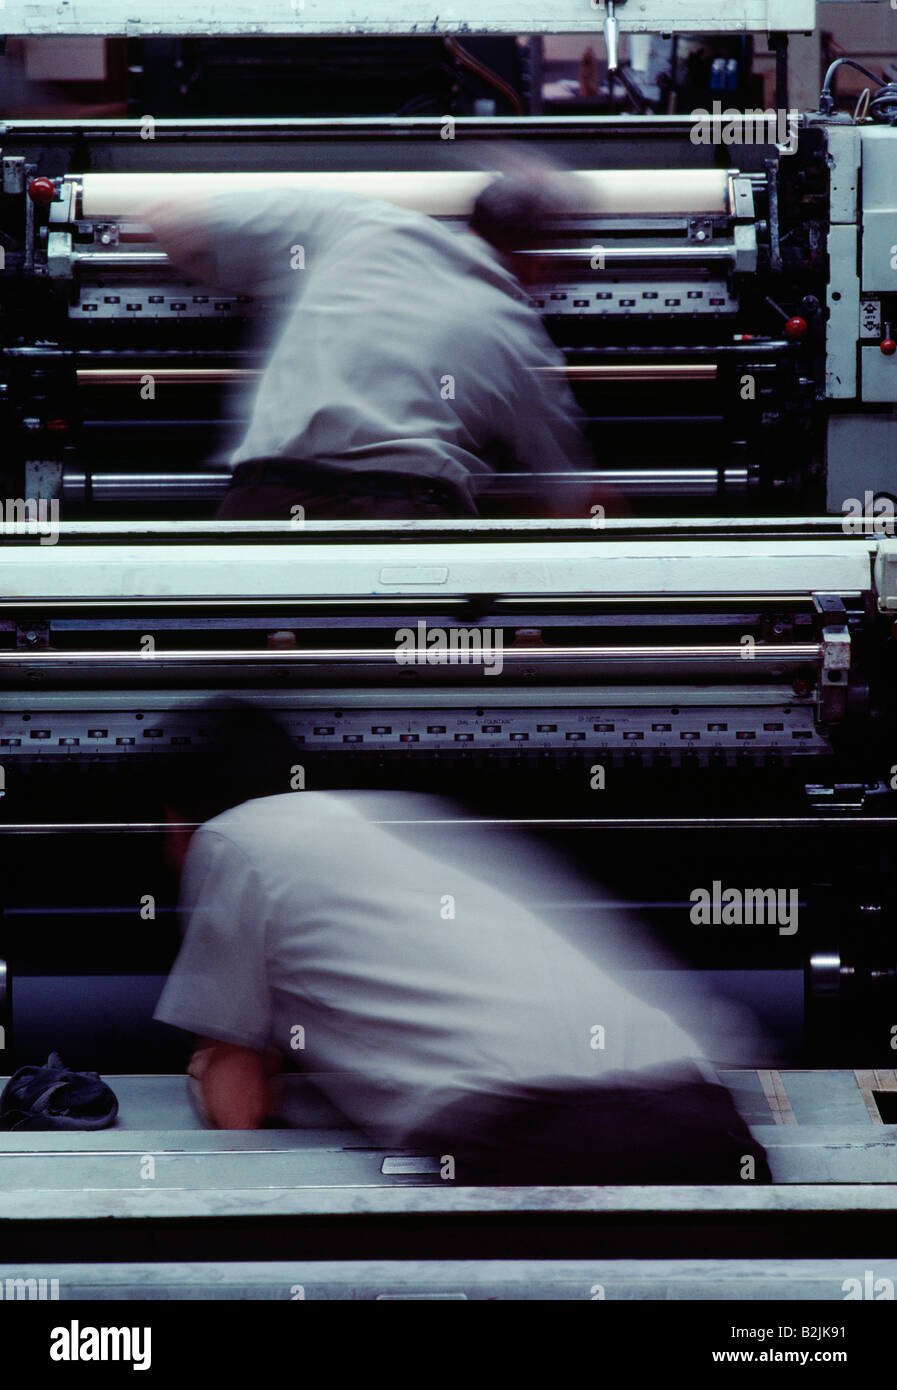 Two pressman in a blur of action while working on a commercial offset printing press - Stock Image